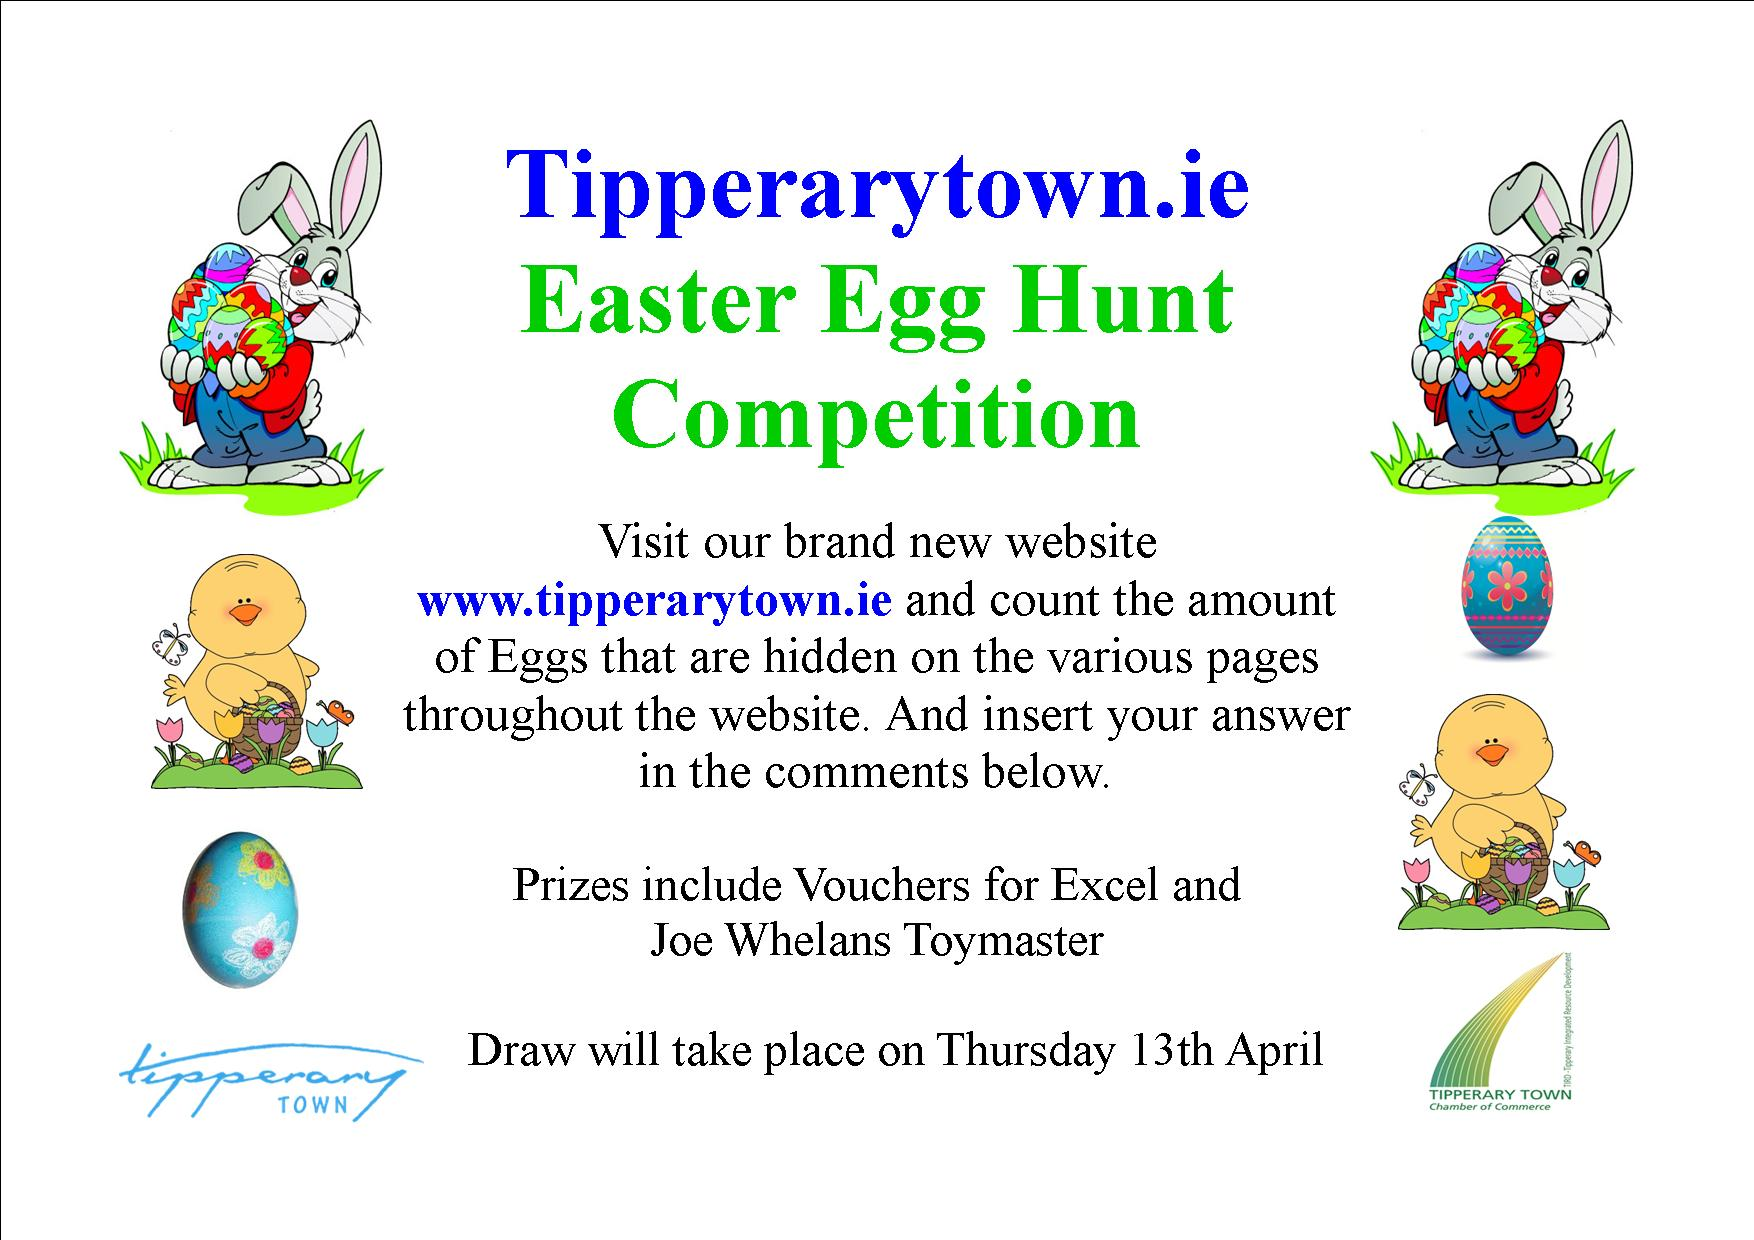 1754x1240 Tipperarytown.ie Easter Egg Hunt Competition